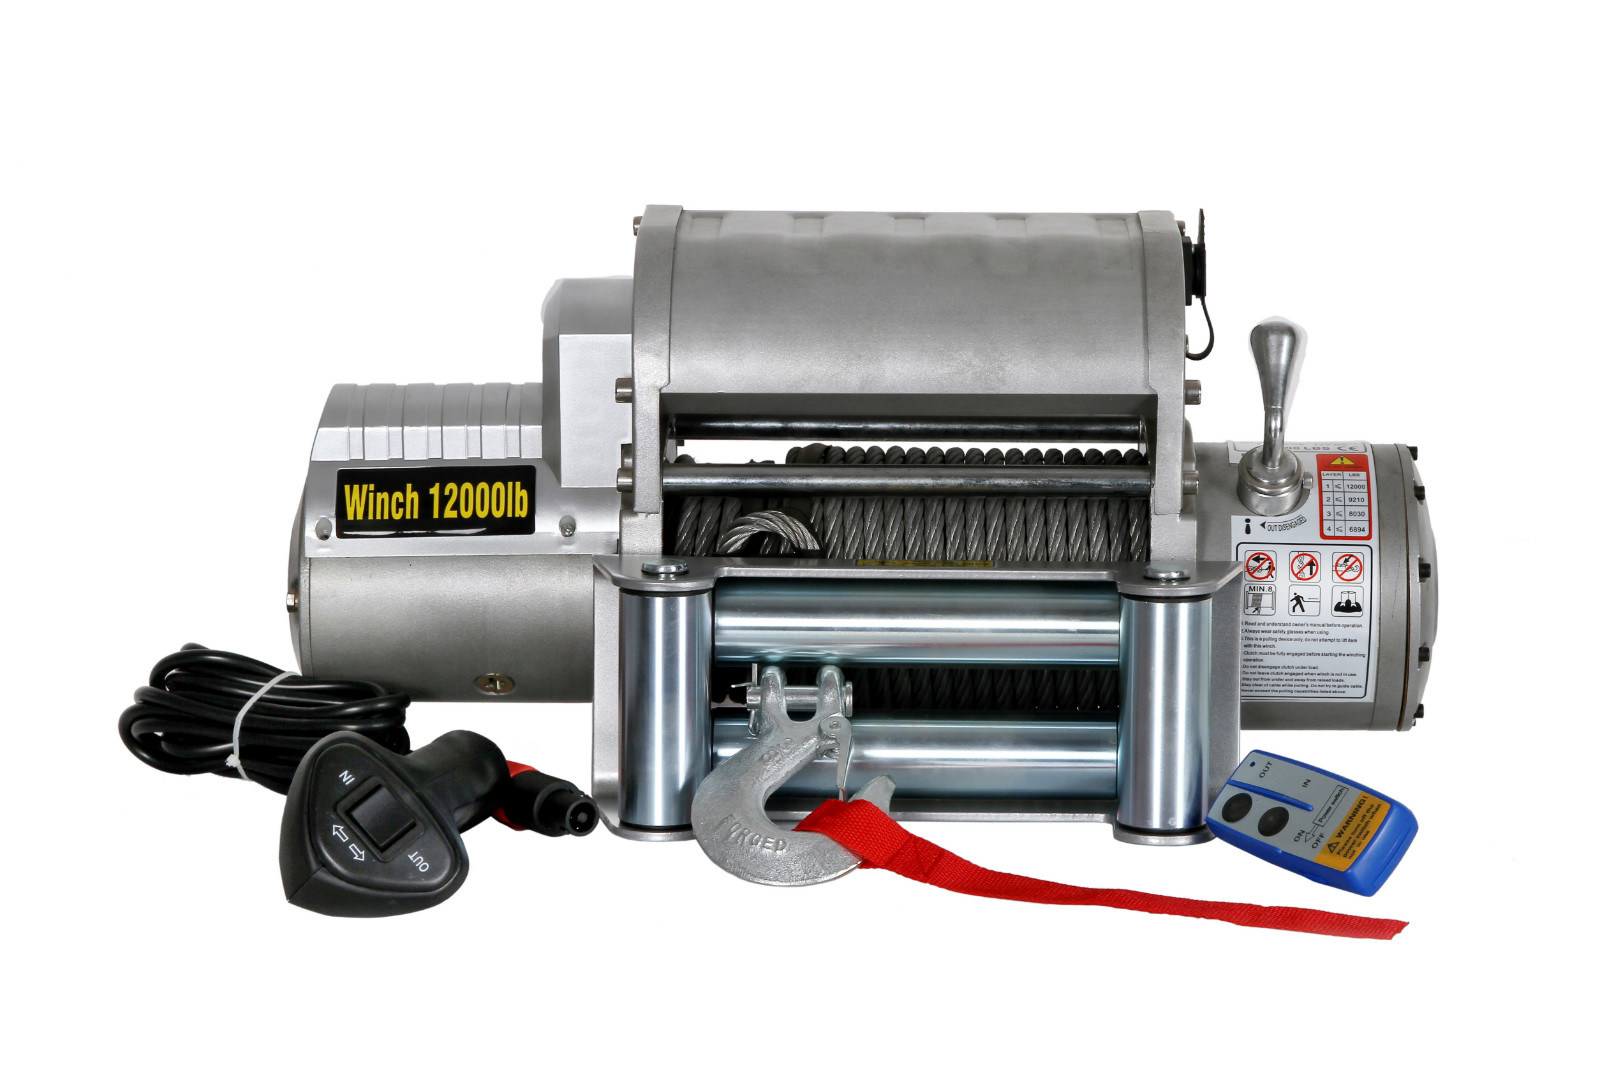 Recovery Truck Winch 12000lbs Wireless with 12VDC CE Approved